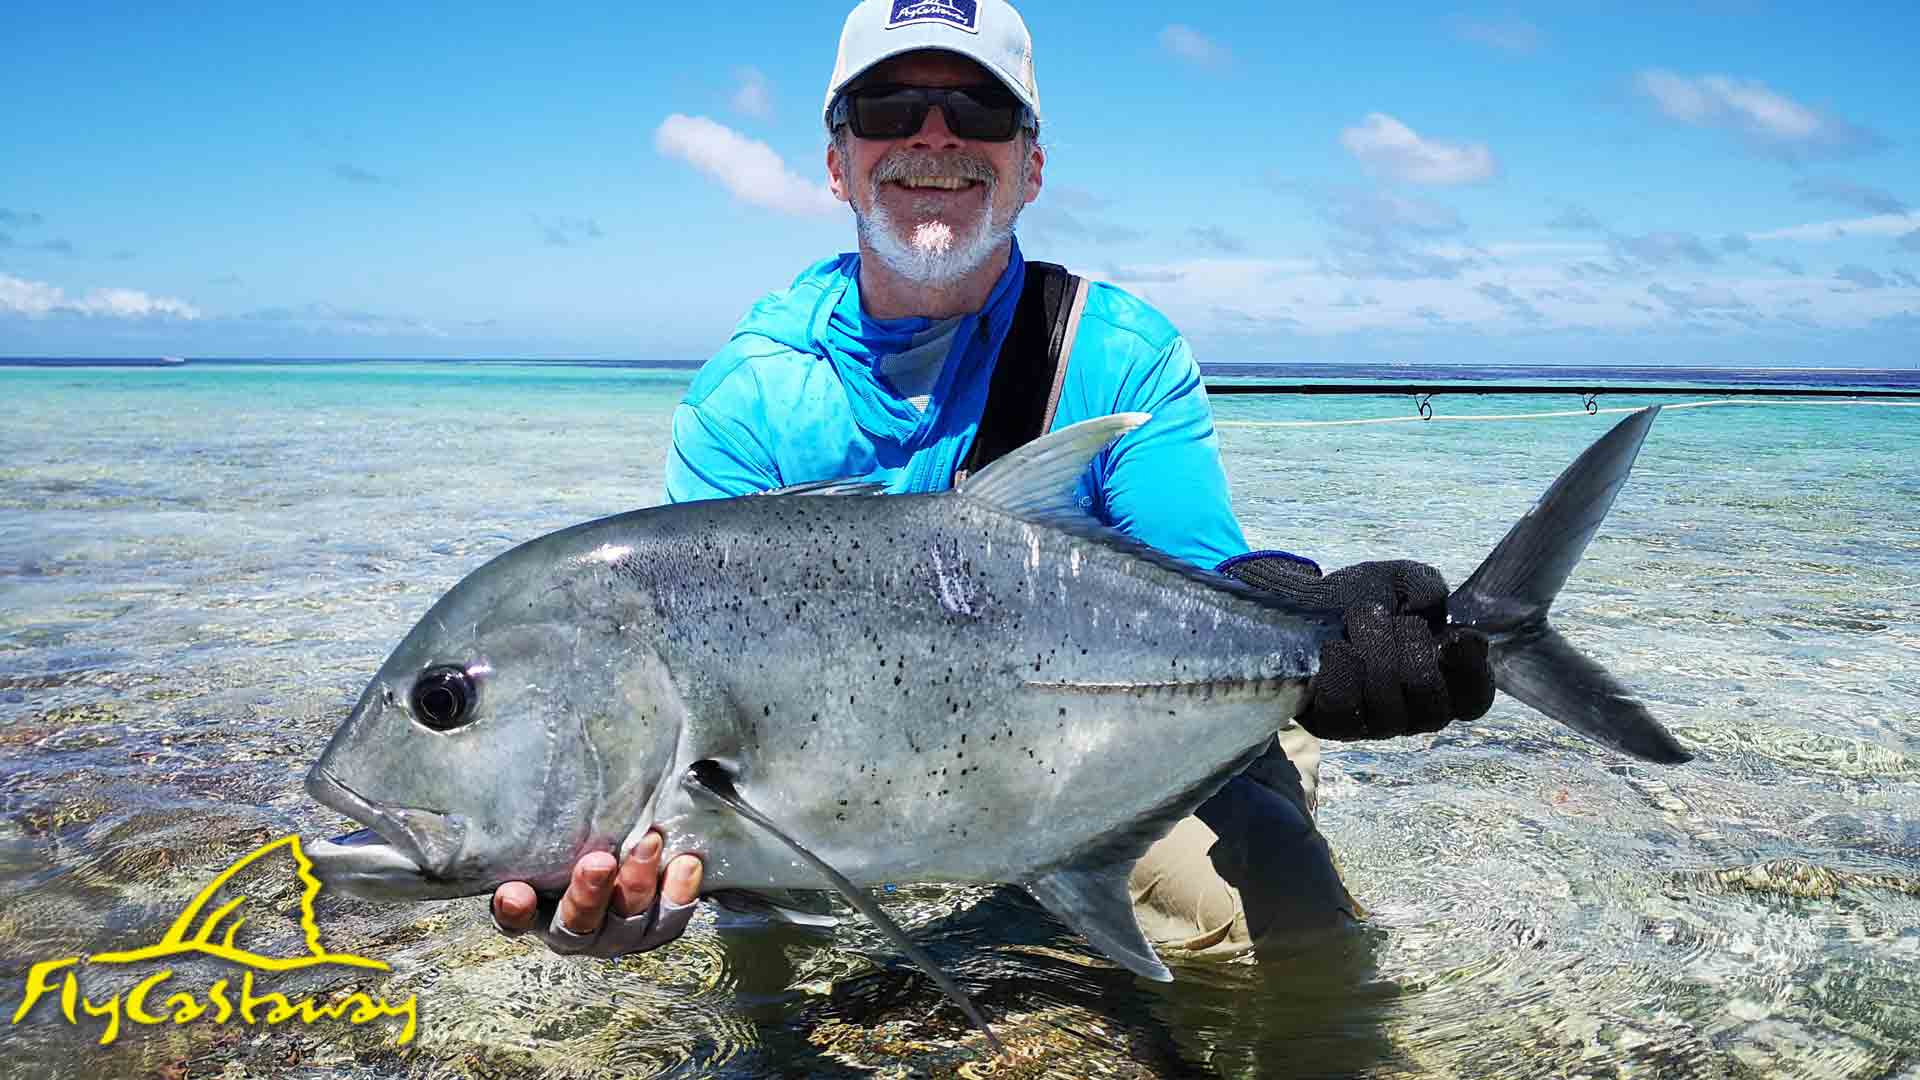 Bruce Tyson with Giant Trevally